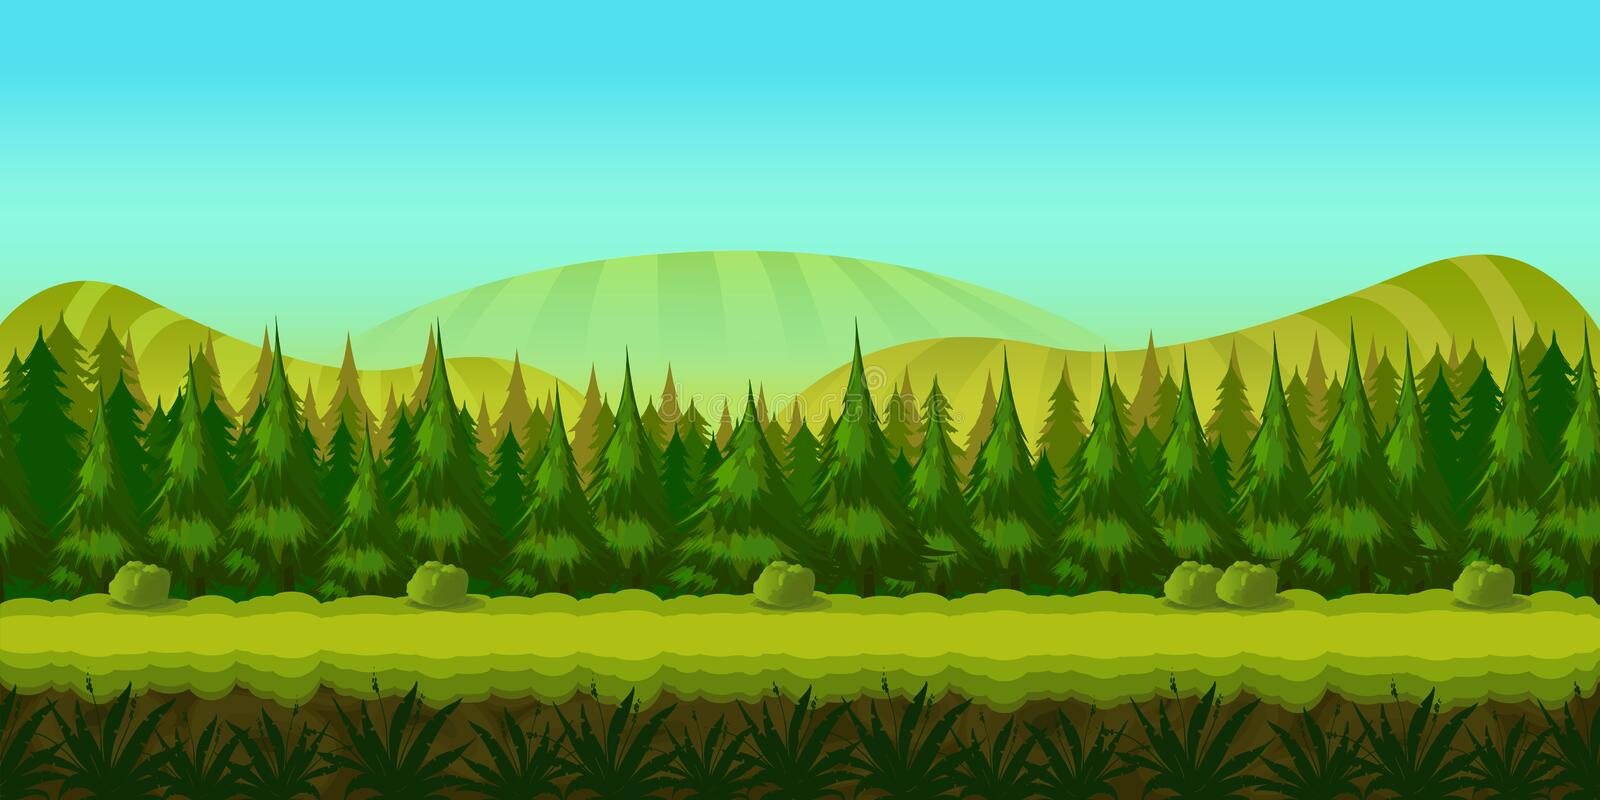 Background for you game with green forest on foreground and hills and fields on background. vector illustration